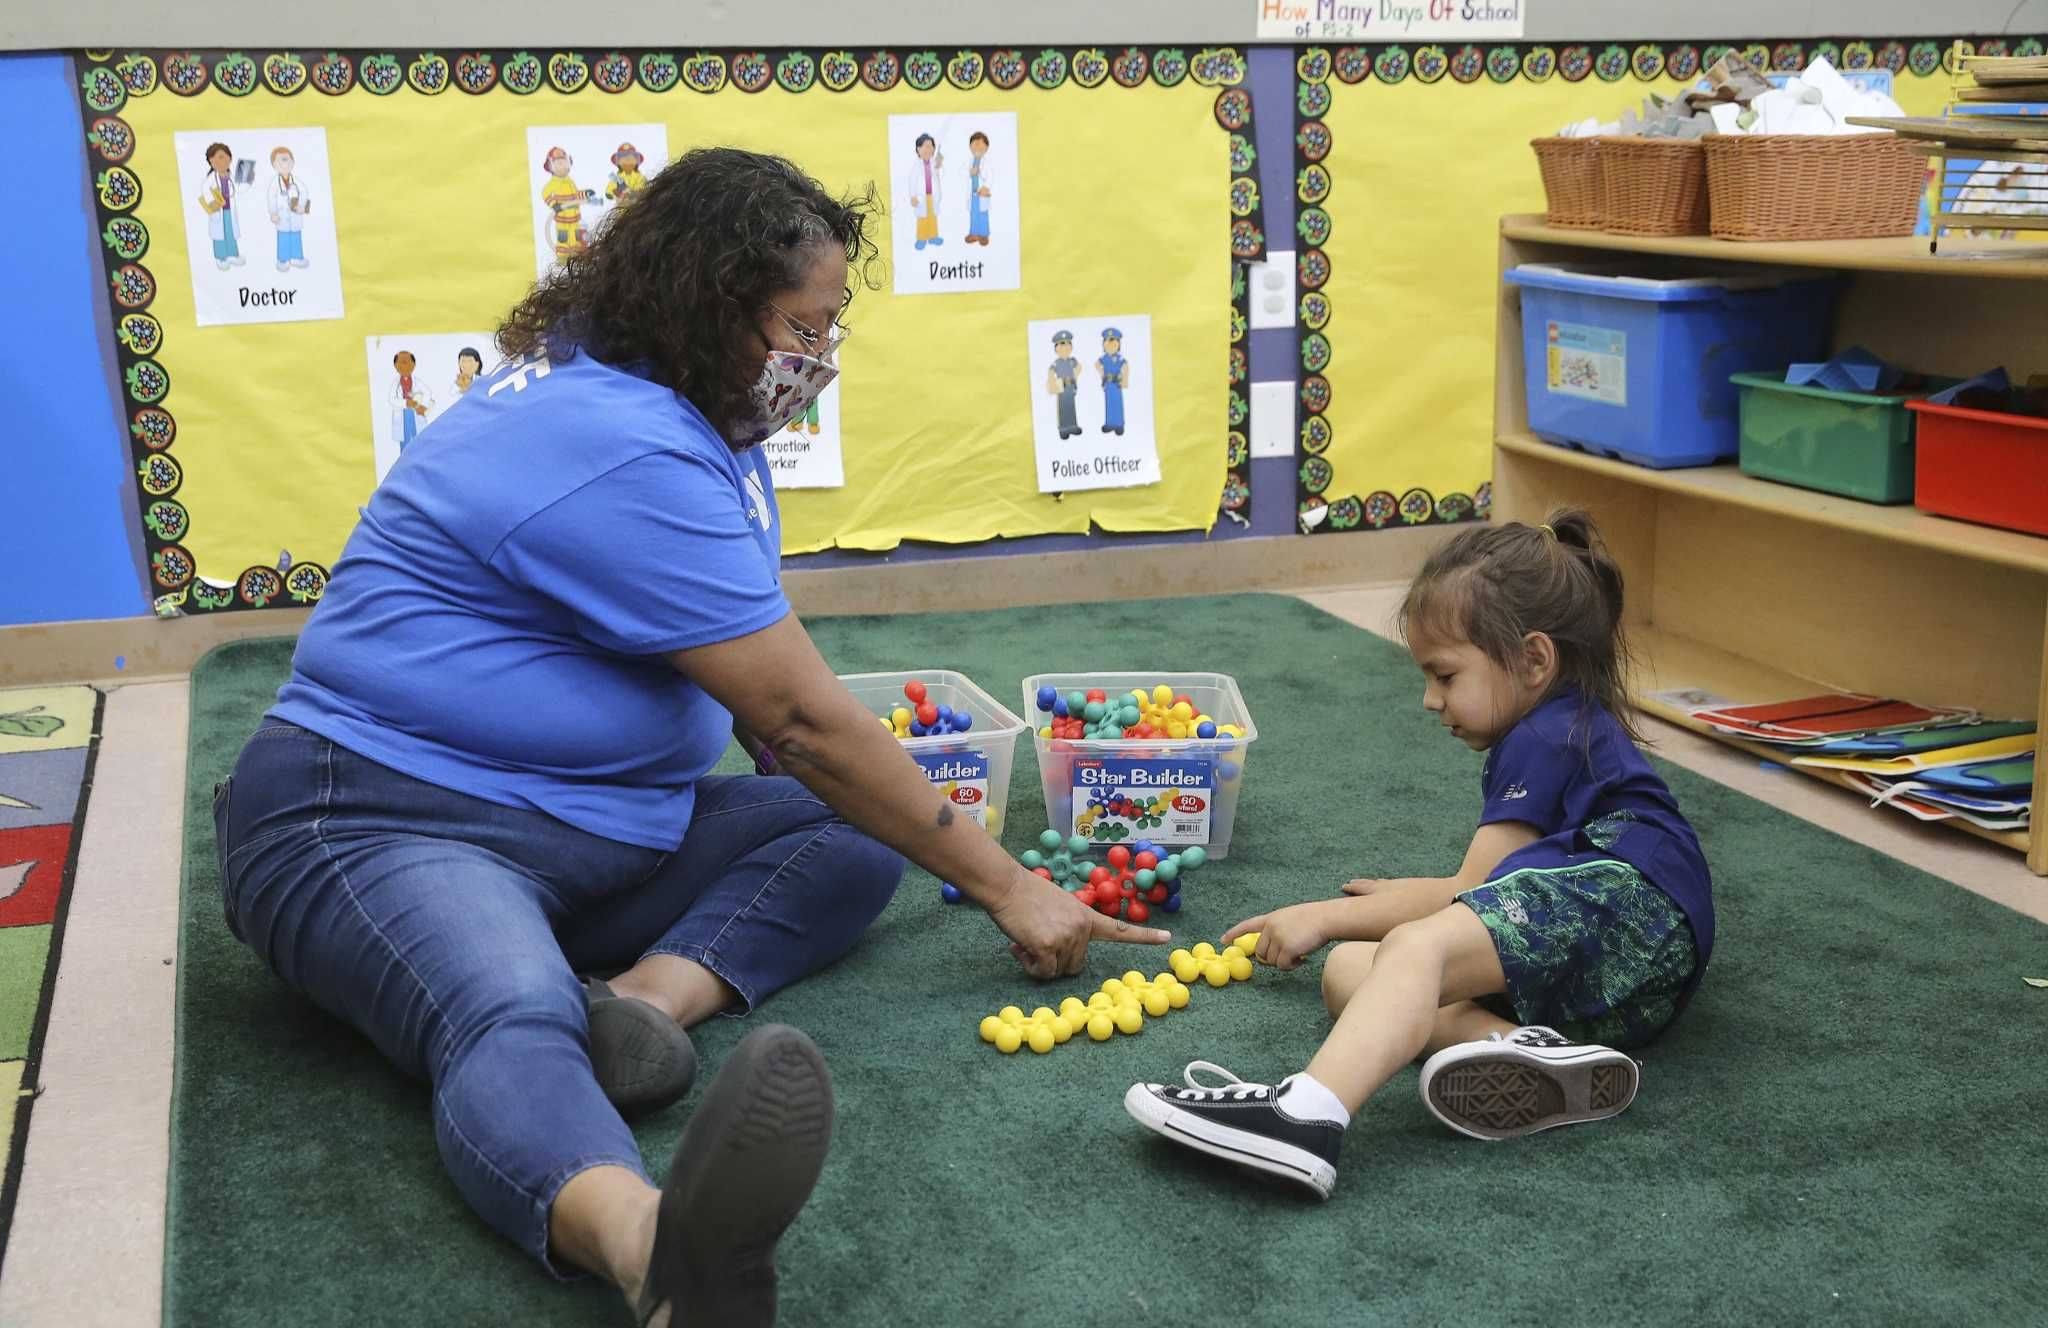 Commentary: For society to emerge strong, care for the child care providers